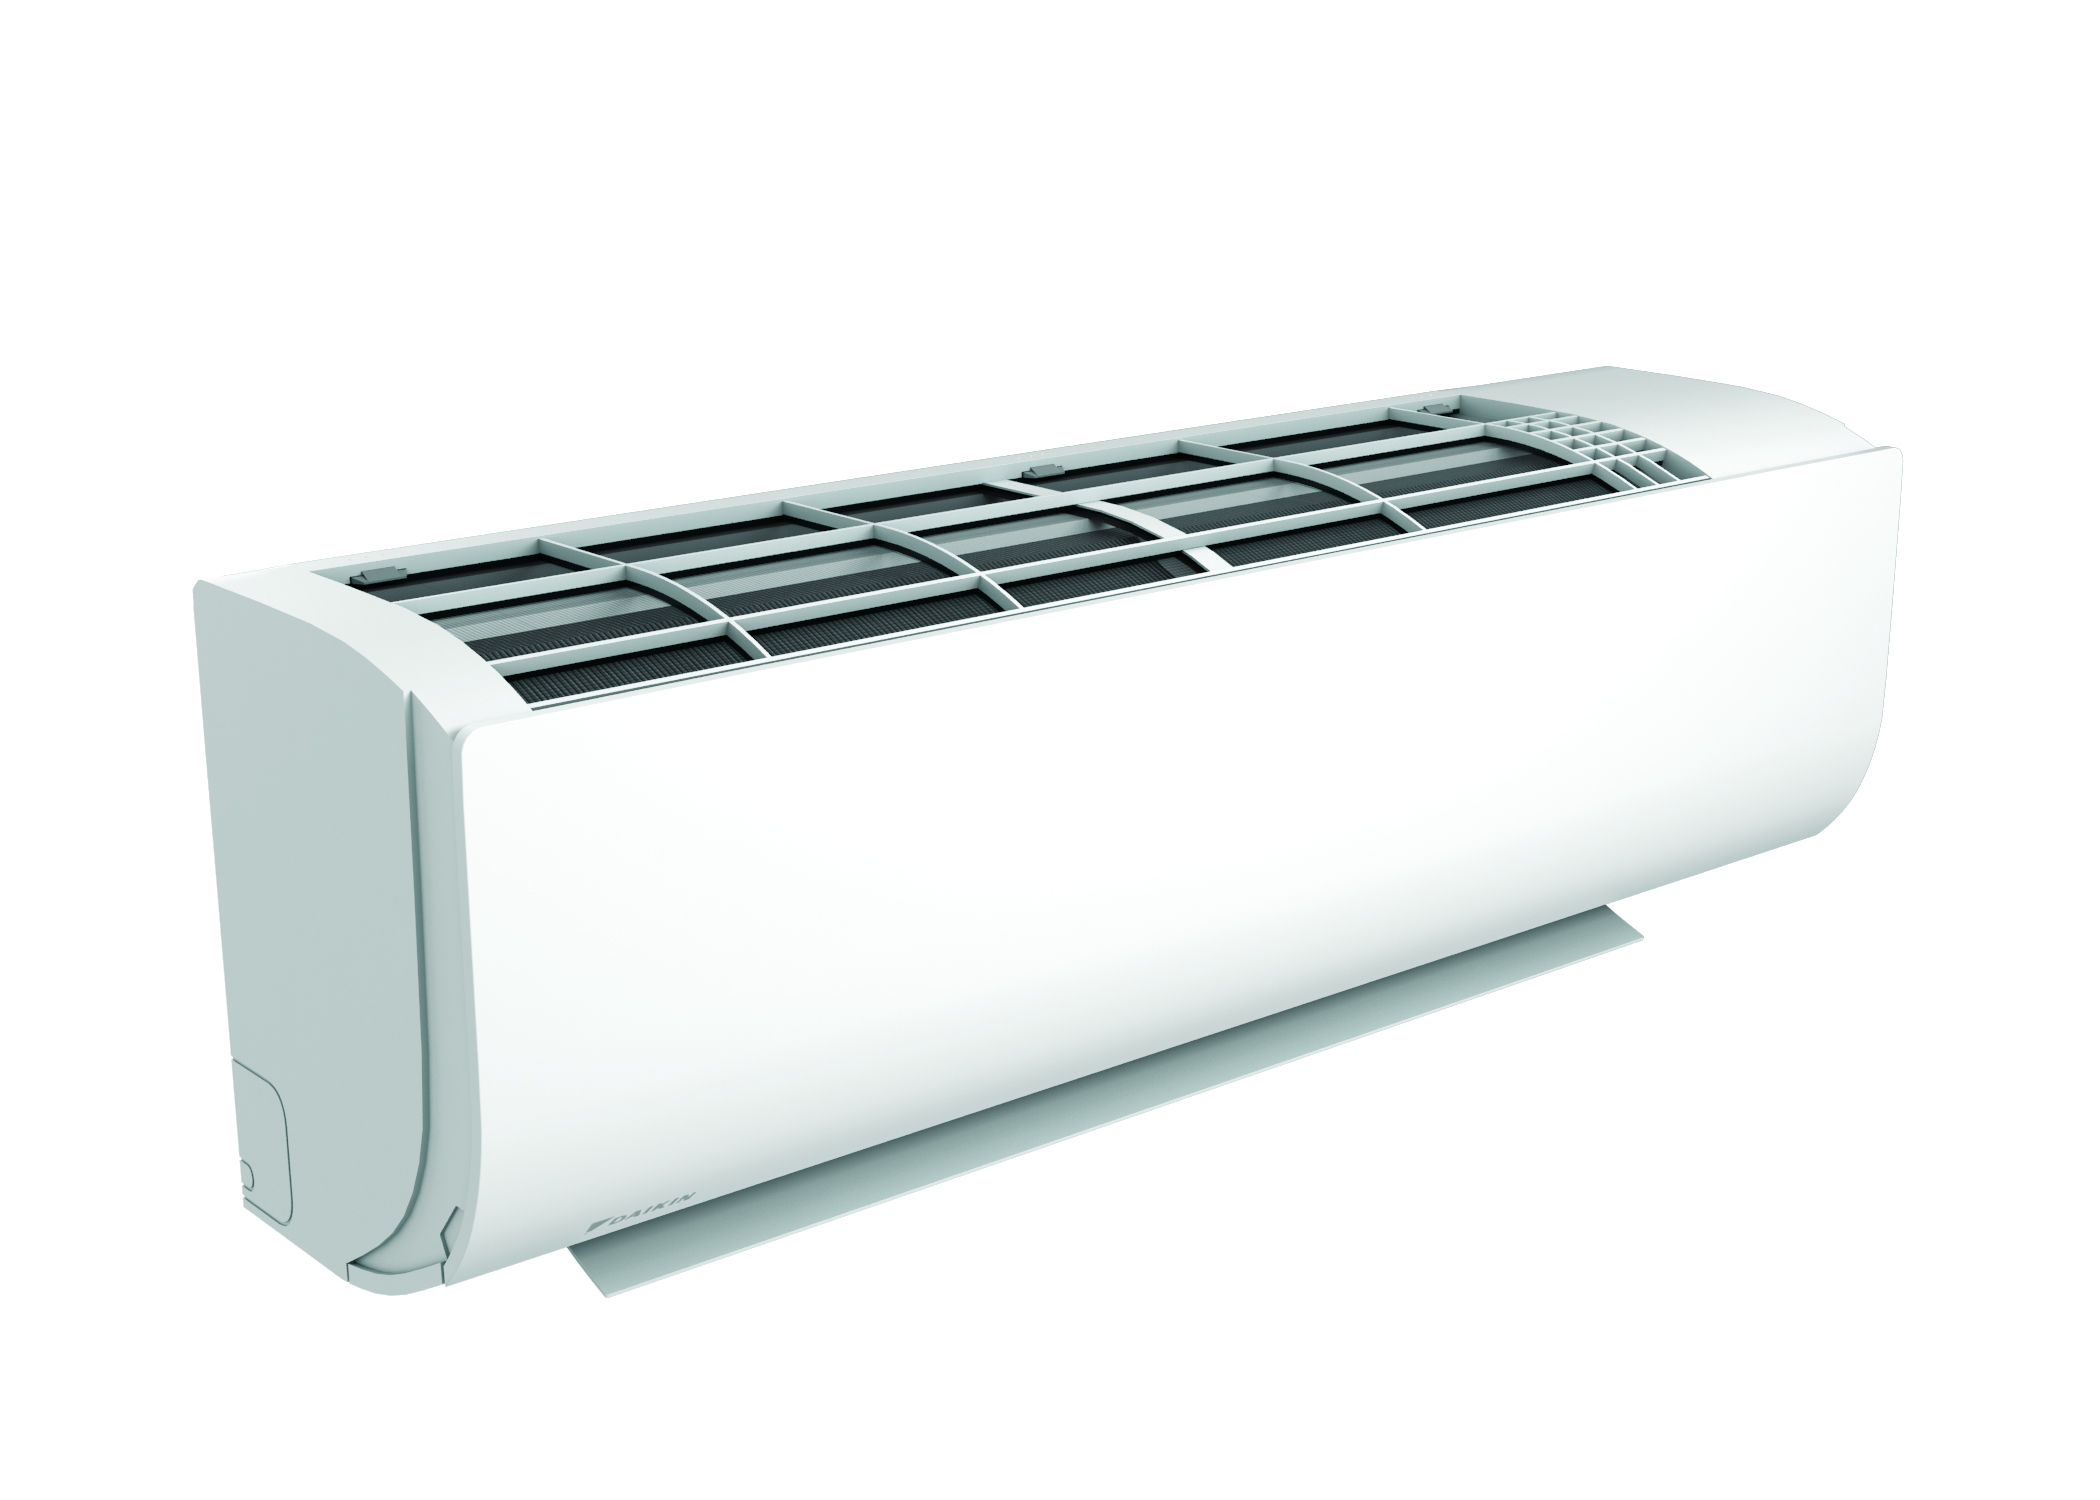 Installation Only Requires 3-Inch Opening to Keep Any Room Or Area At A Consistent Temperature